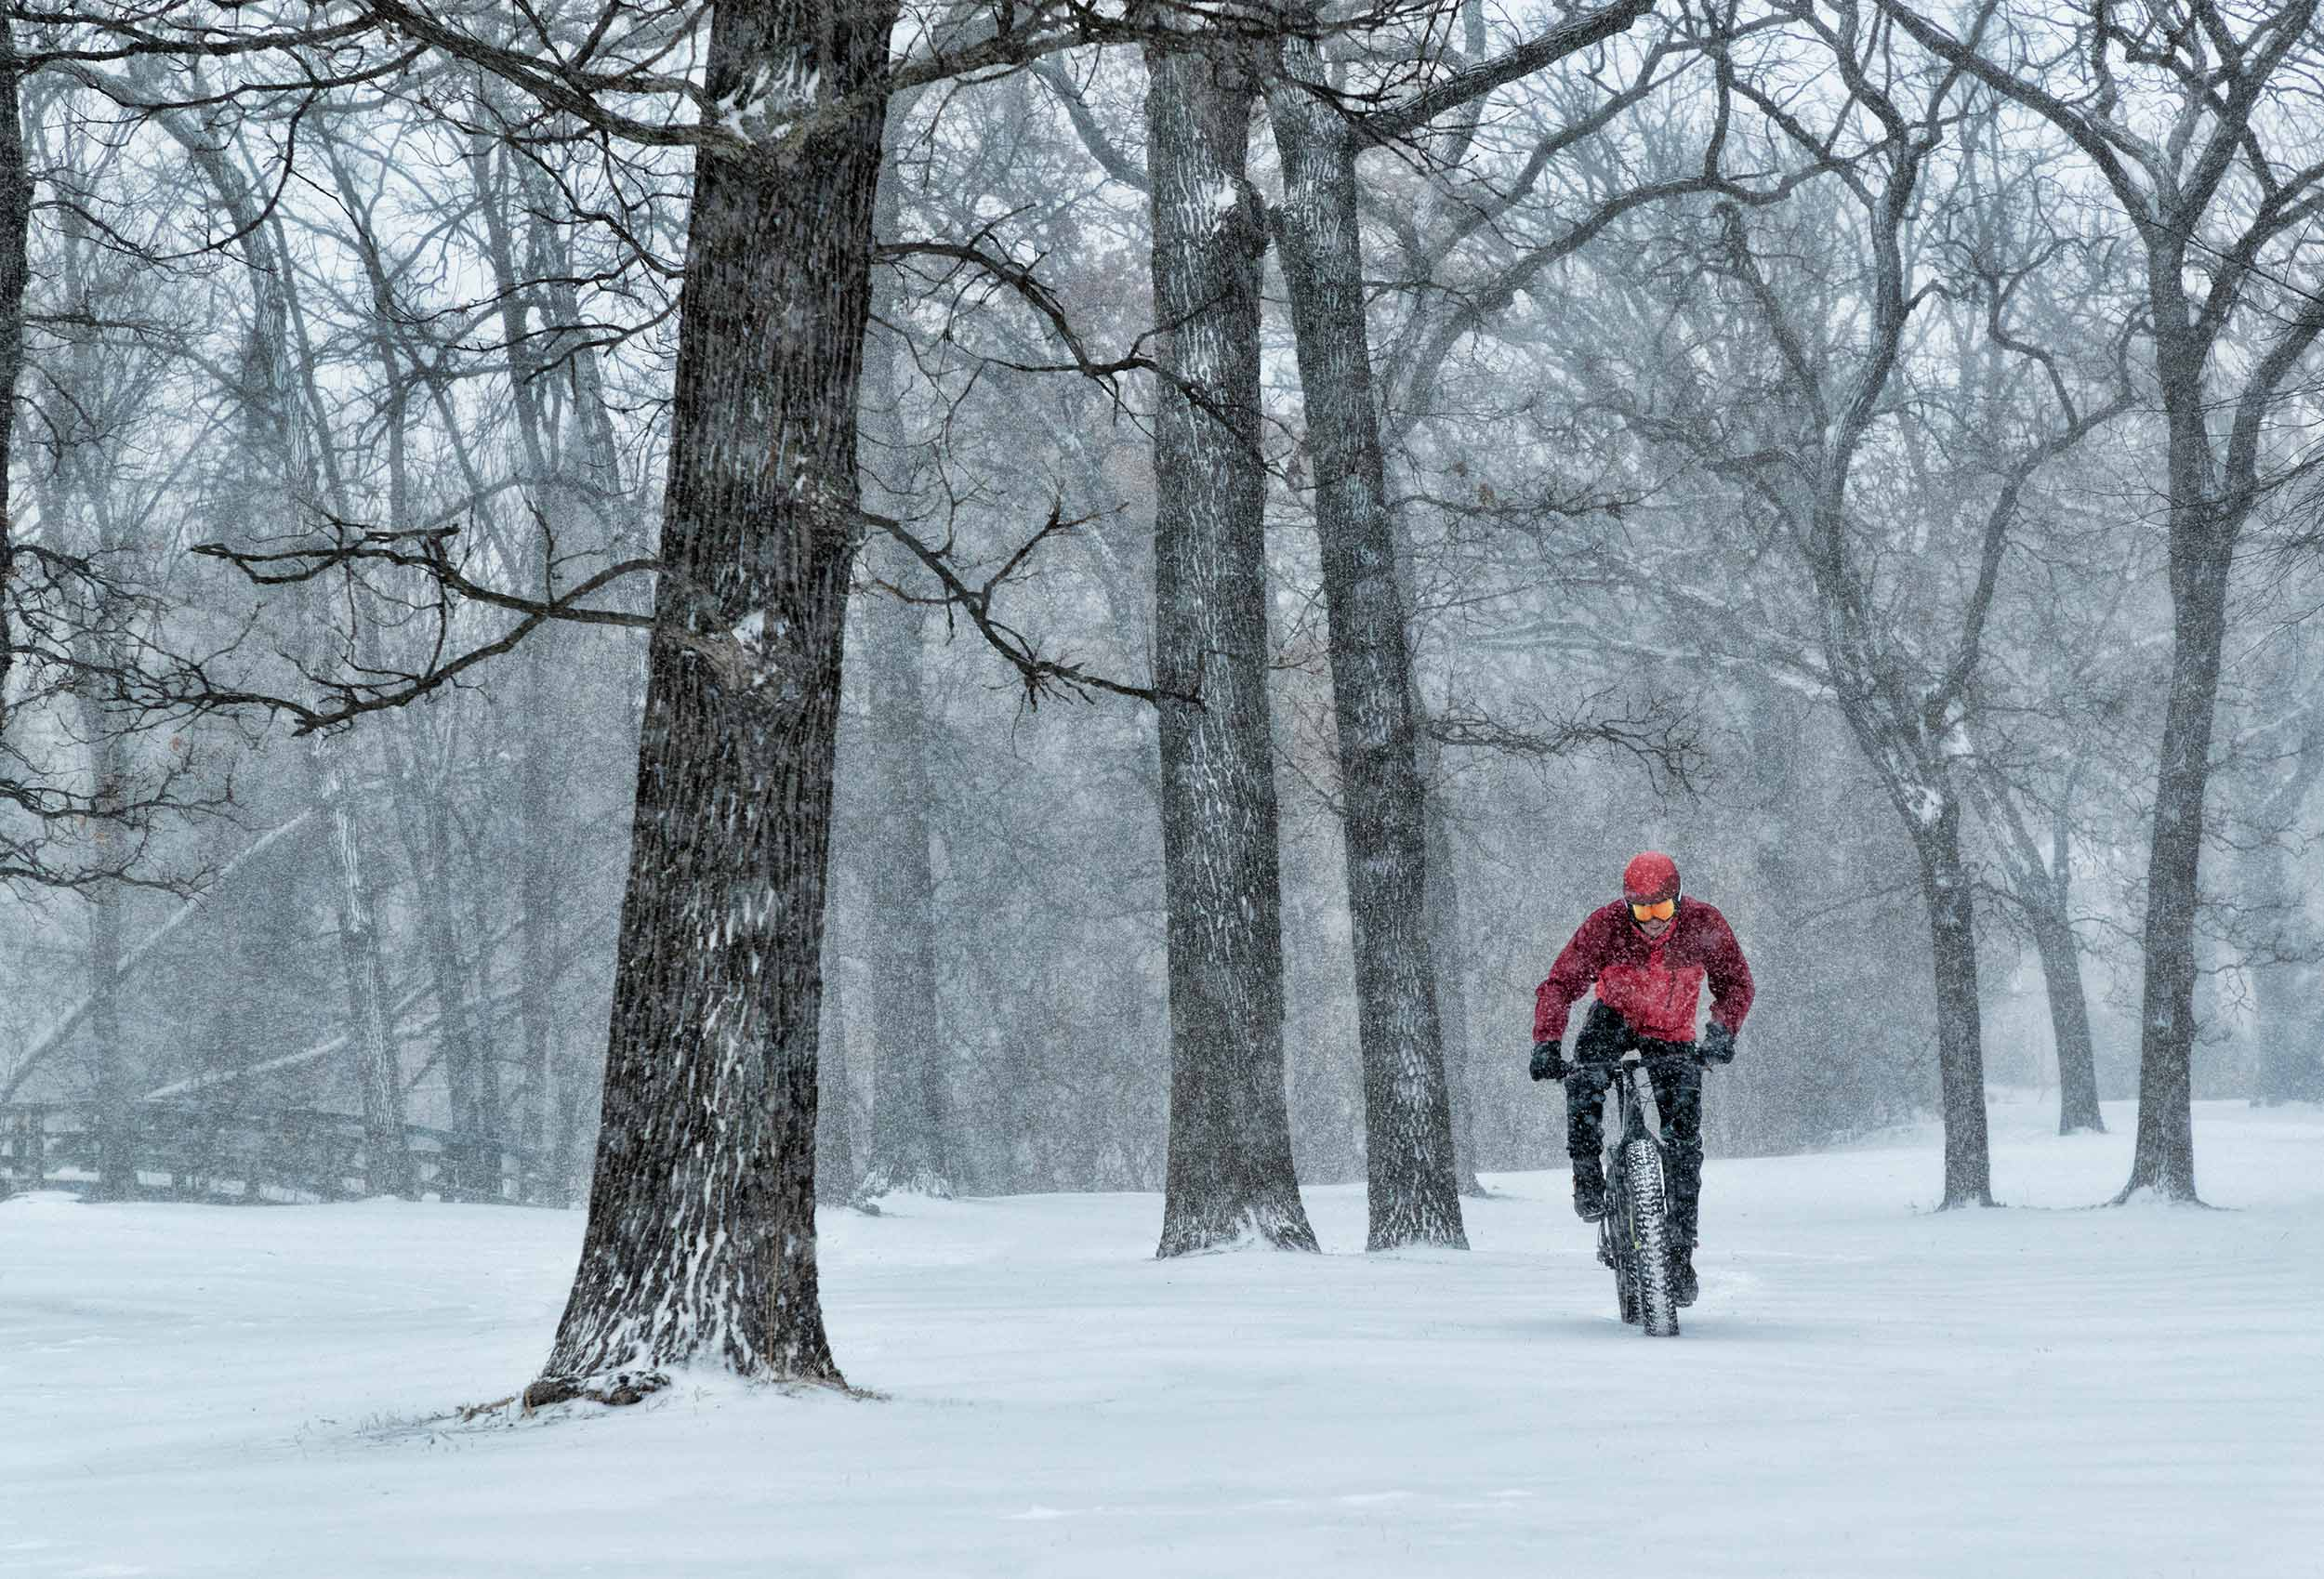 A-FATBIKER-RIDING-IN-A-SNOWSTORM_MINNEAPOLIS_MINNESOTA